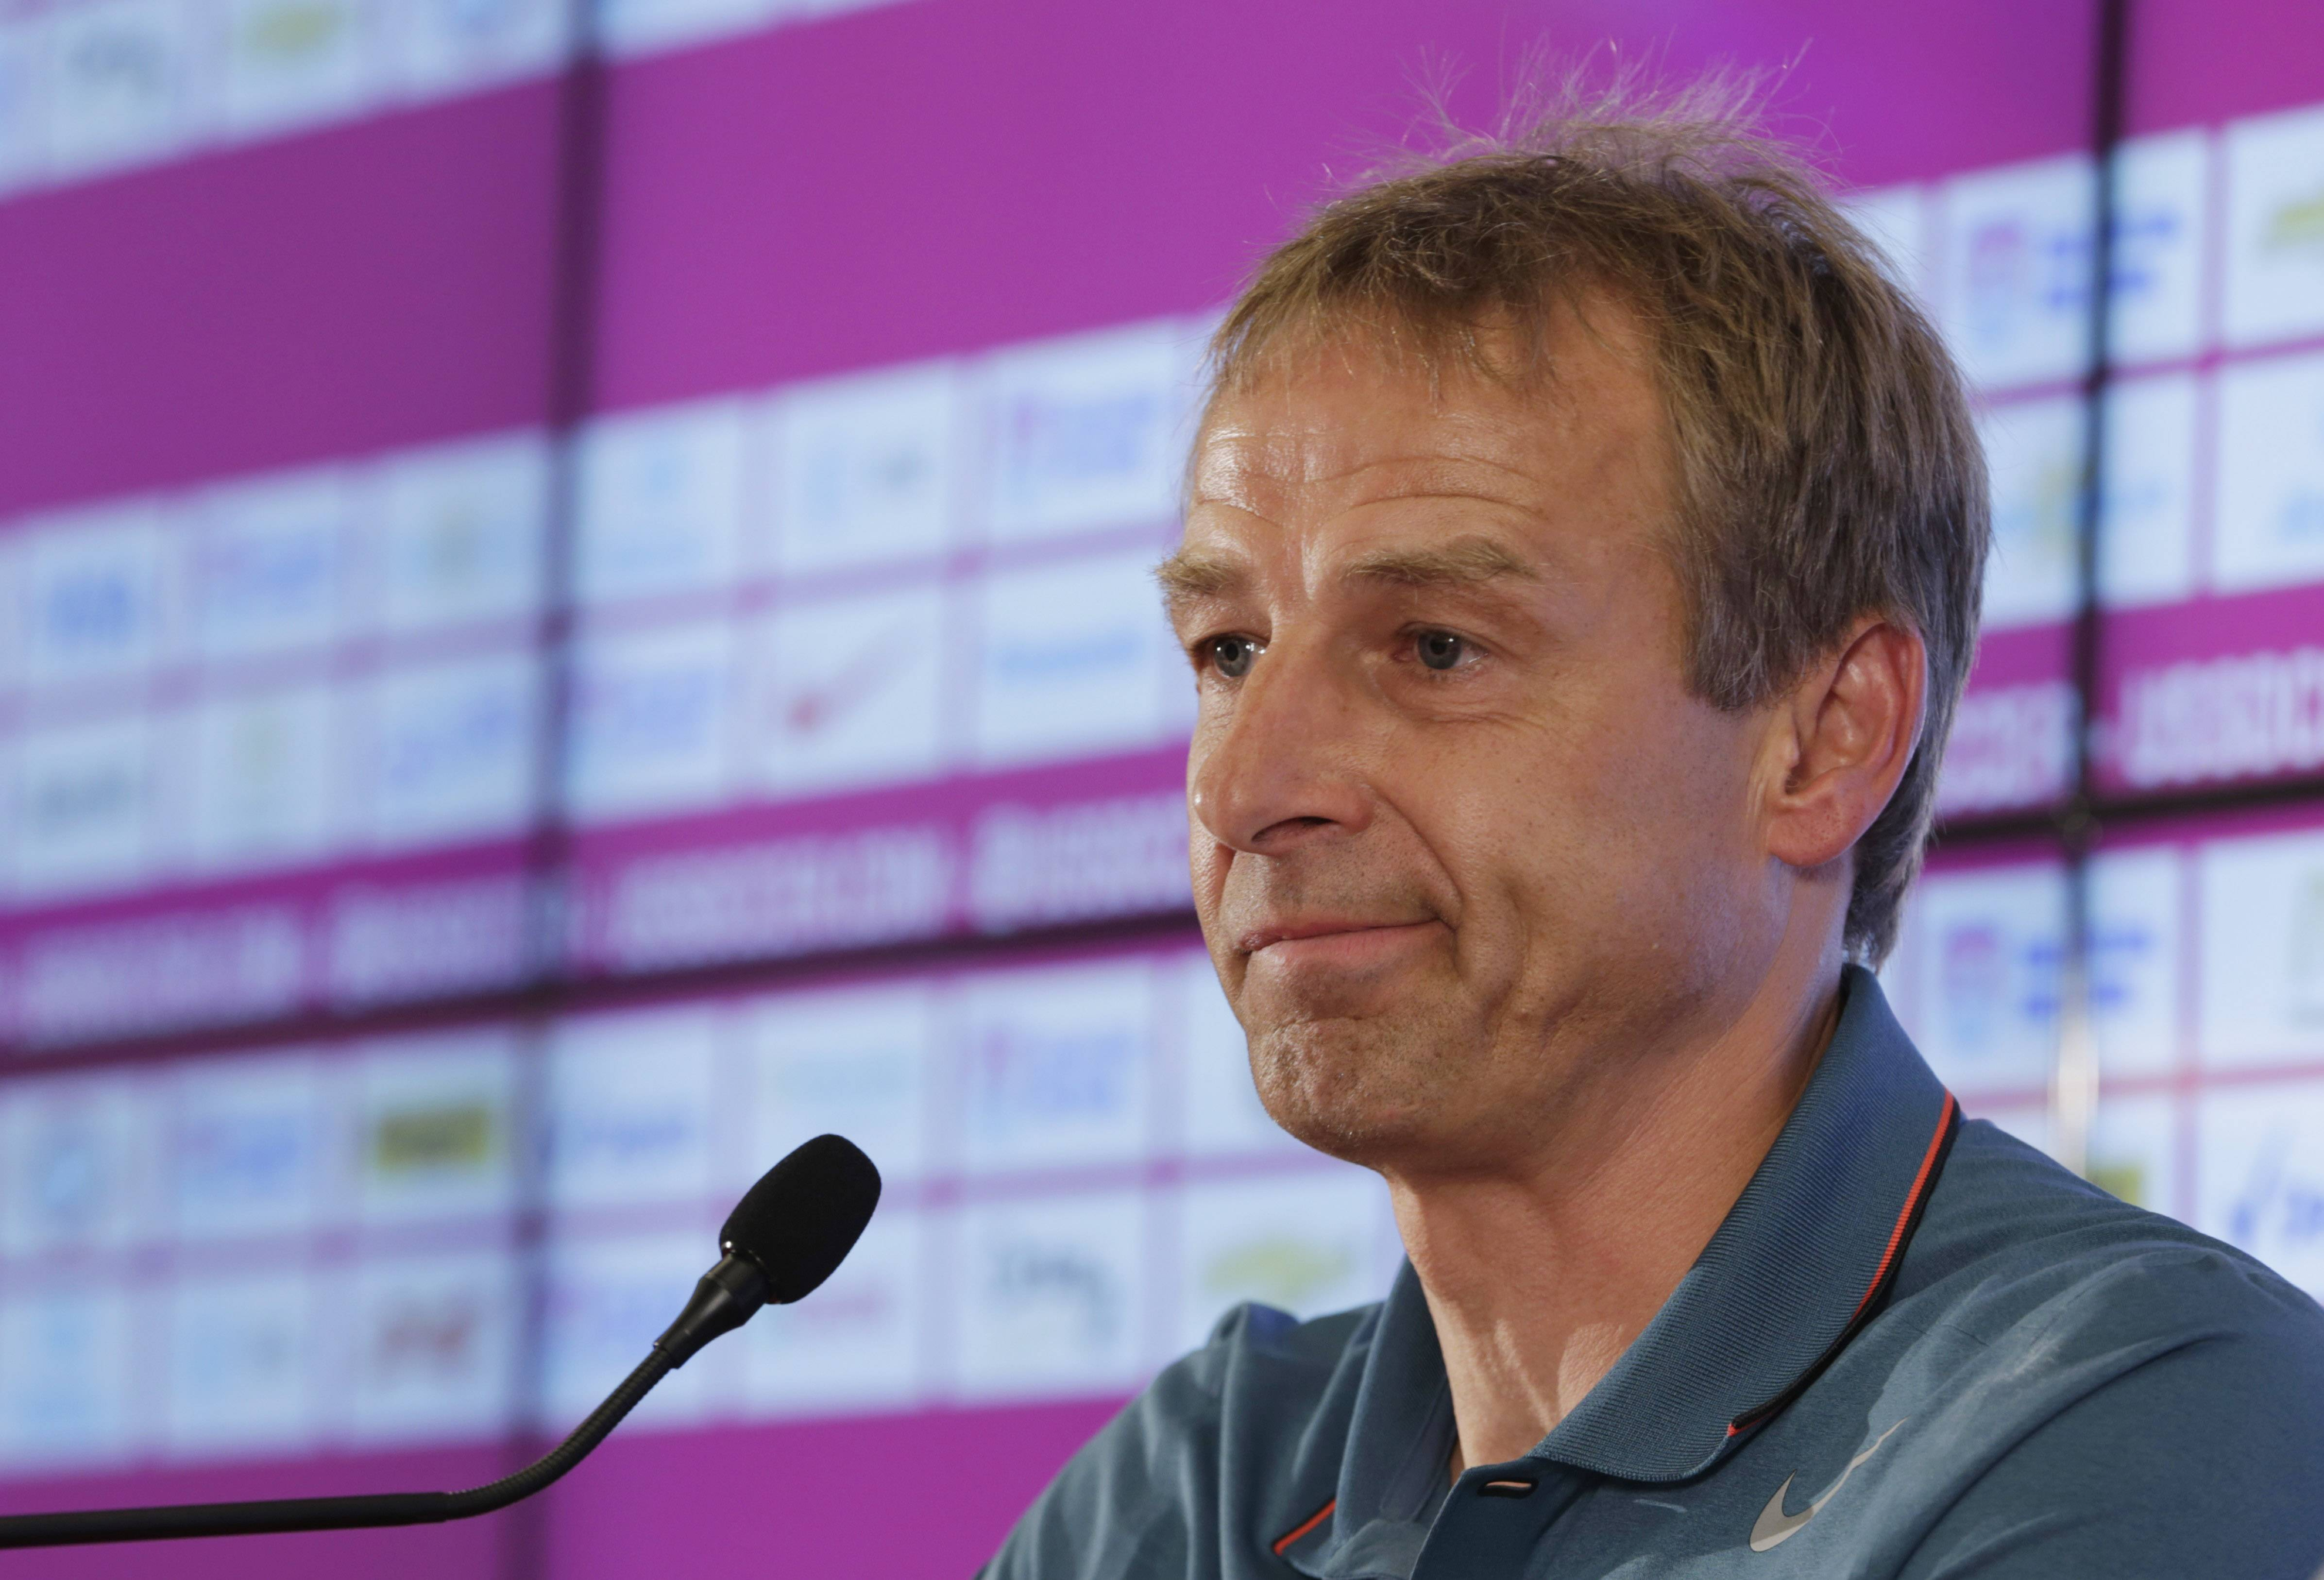 United States head coach Jurgen Klinsmann addresses the press in Sao Paulo, Brazil, Wednesday, July 2, 2014. The U.S. was eliminated from the second round of the 2014 soccer World Cup in a 2-1 loss to Belgium in Salvador, Brazil.